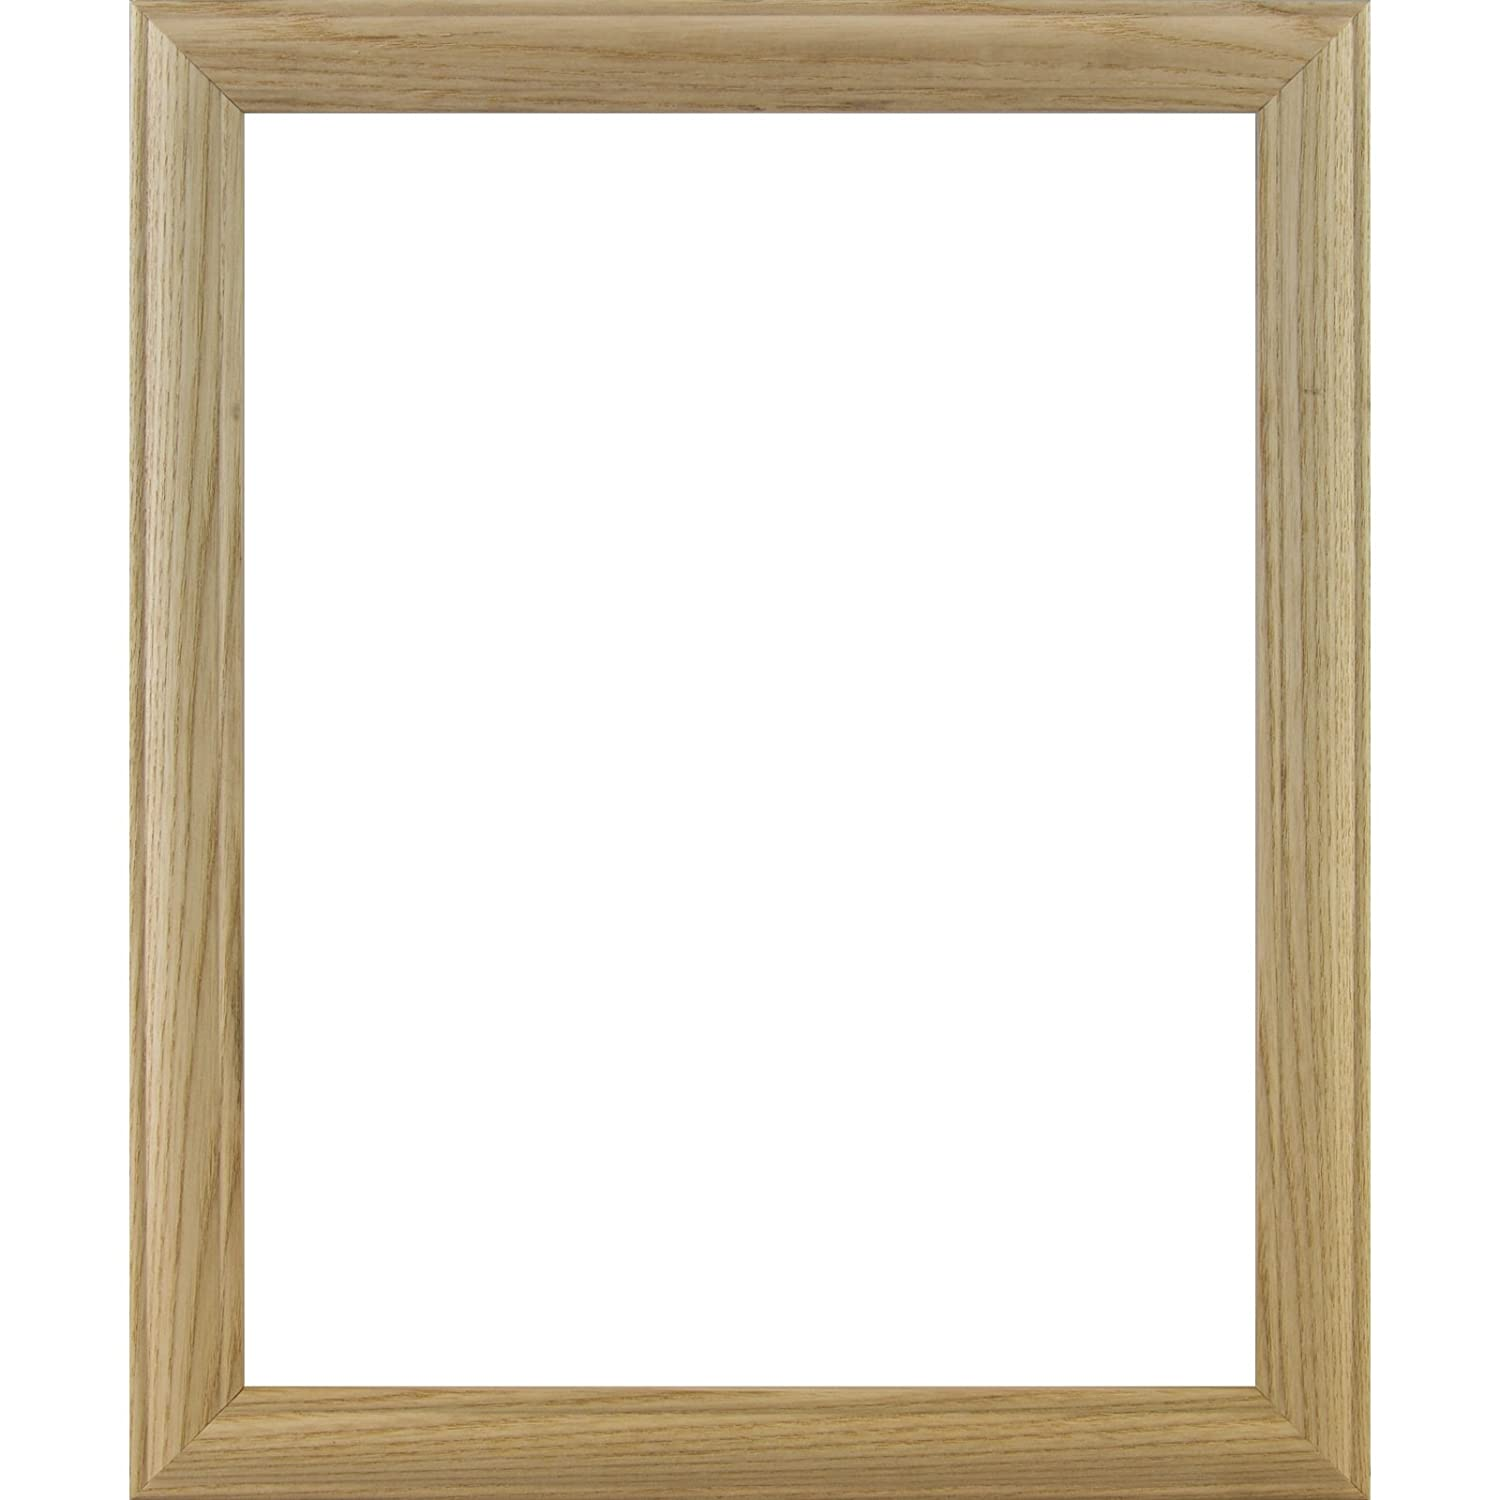 Craig Frames Wiltshire 68 Raw Empty Picture Frame 4 by 6-Inch Ash Frame Shell.84-Inch Wide Unfinished Hardwood